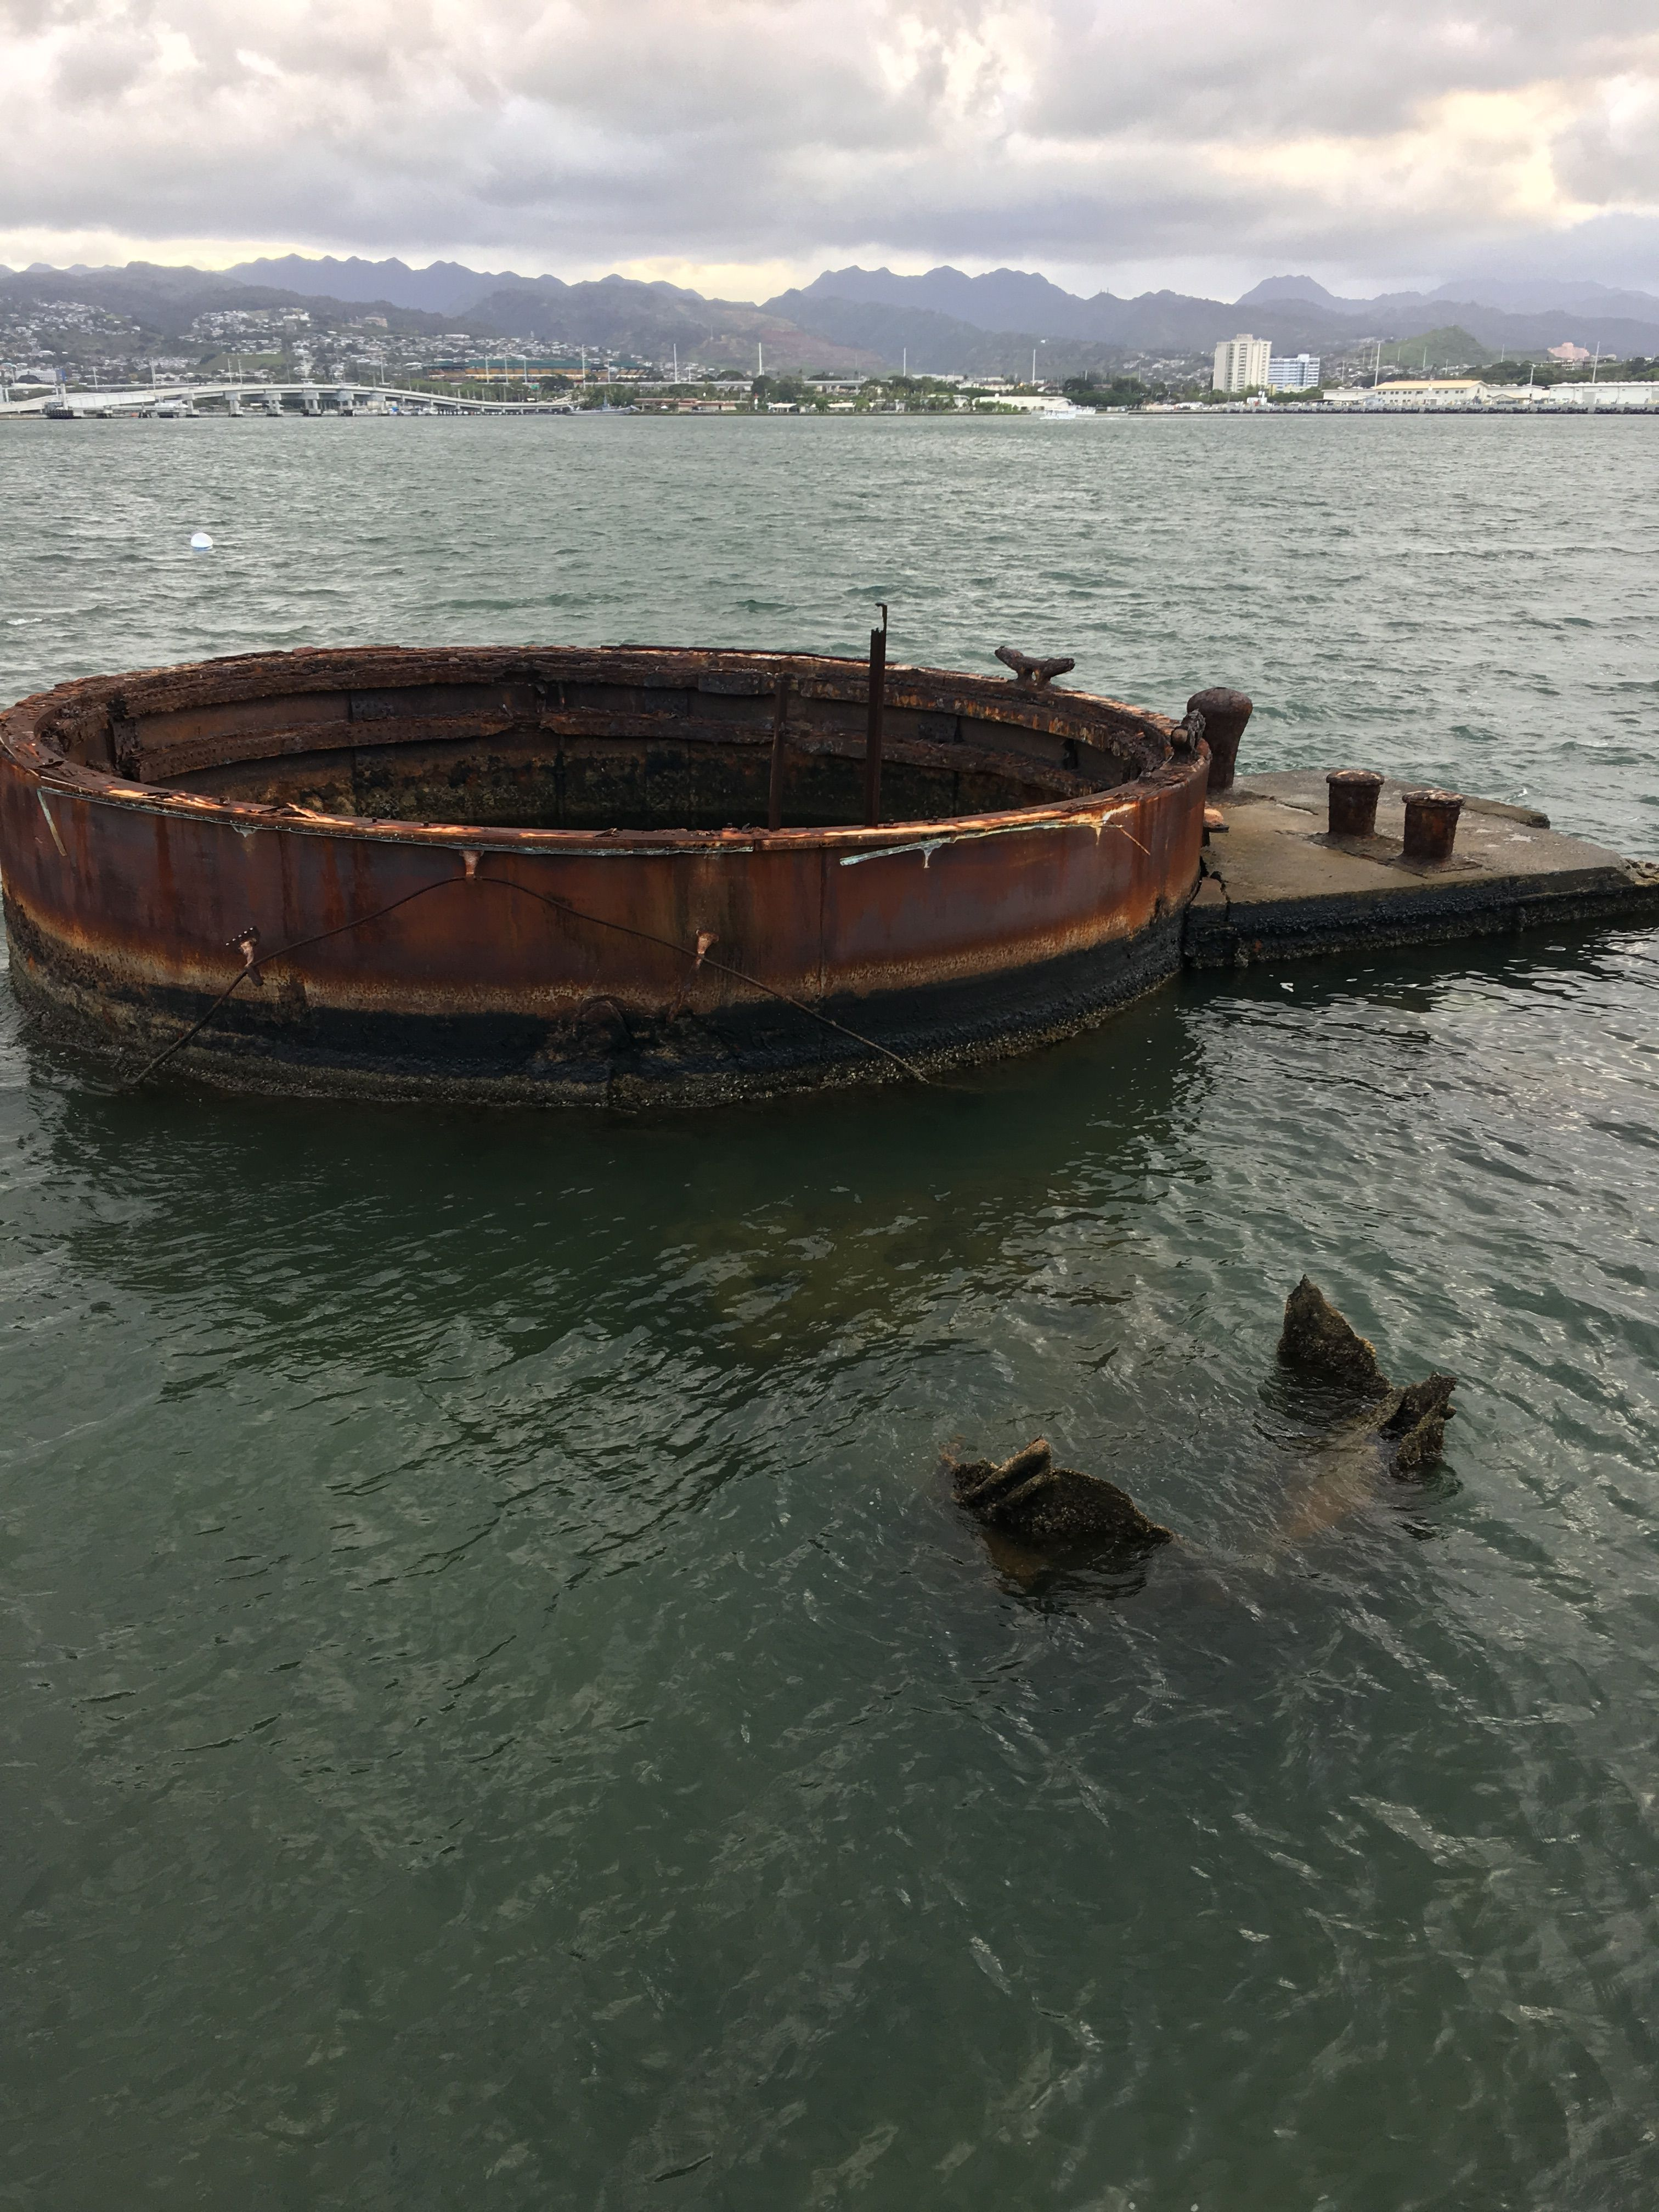 USS Arizona The only fully visible part or the ship